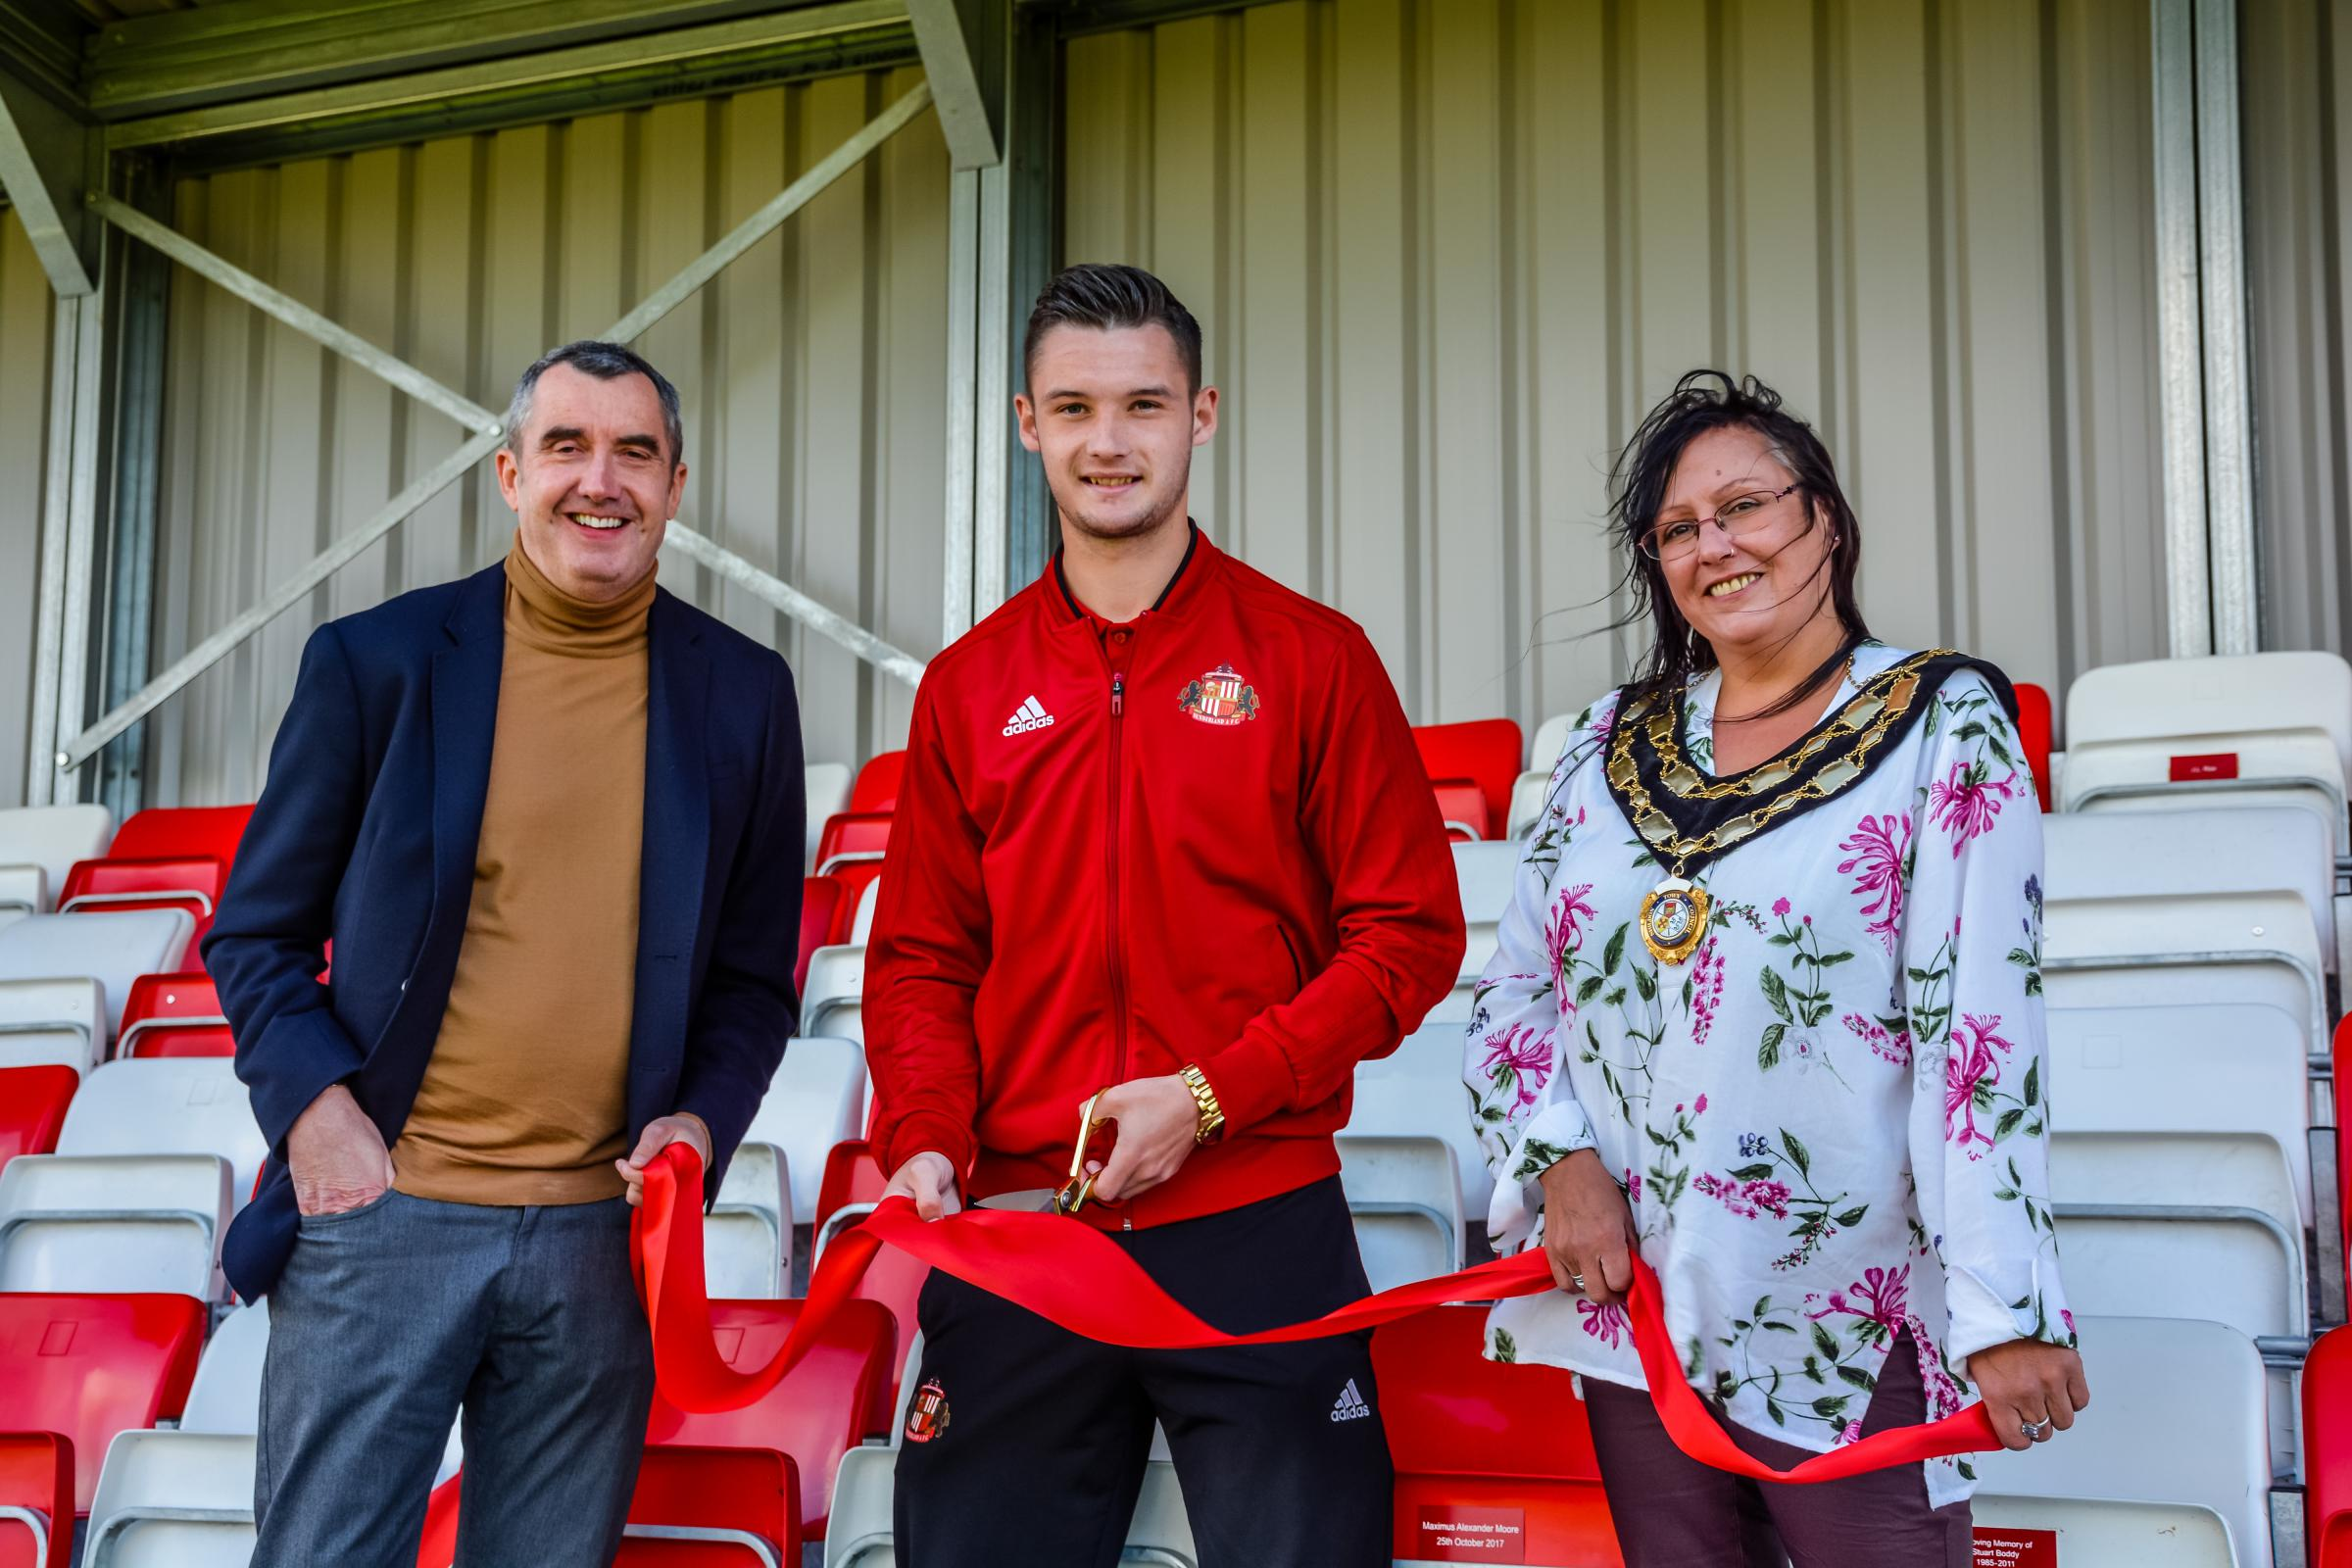 OPEN: Luke Molyneux opens the new stand alongside Shildon AFC Chairman, David Dent and Councillor Luan Deakin.